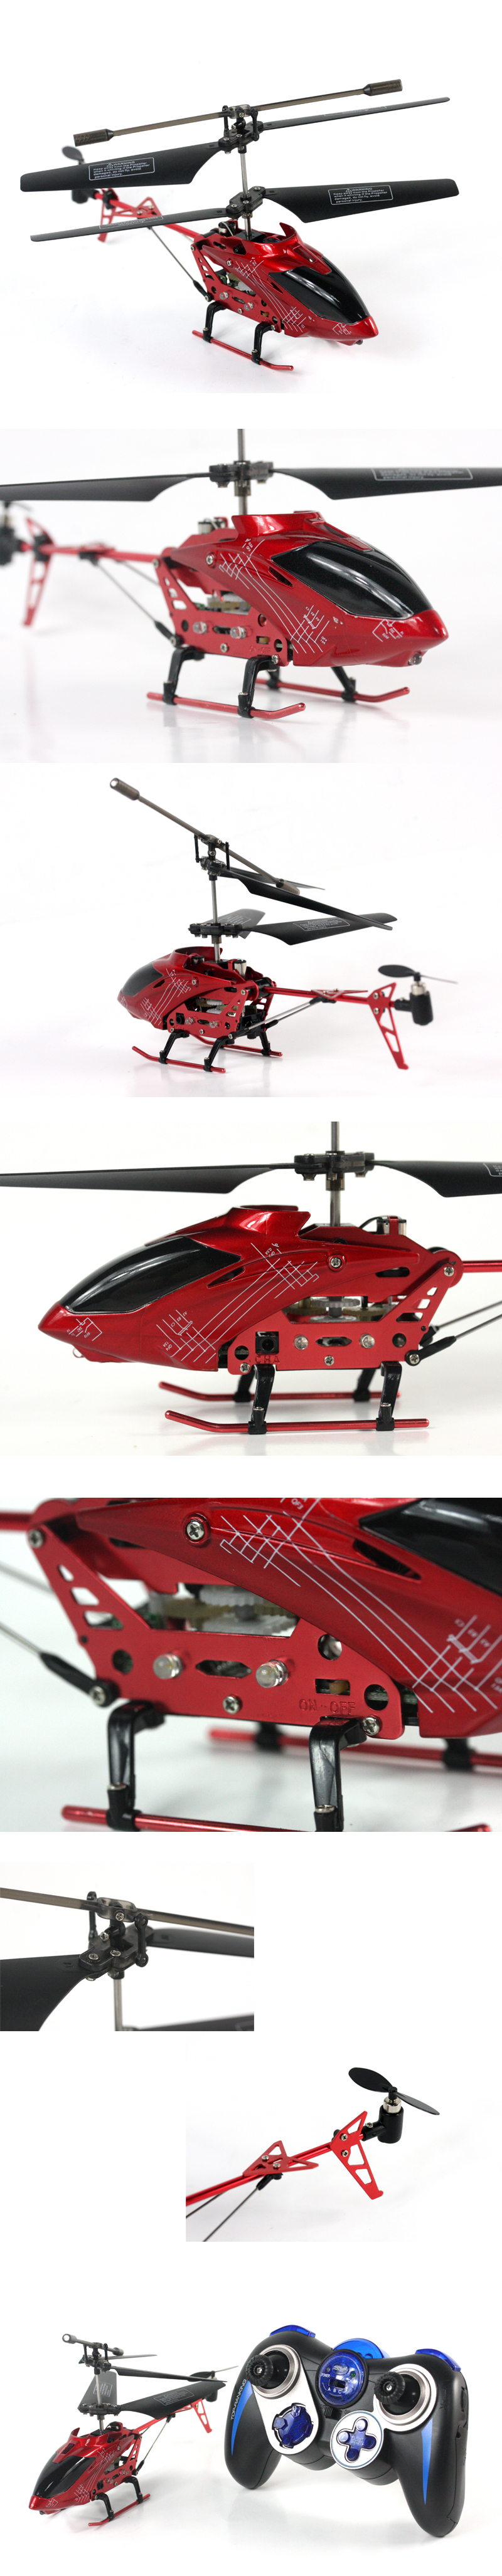 RC drone,drone helicopter,3.5ch rc helicopter,IR helicopter